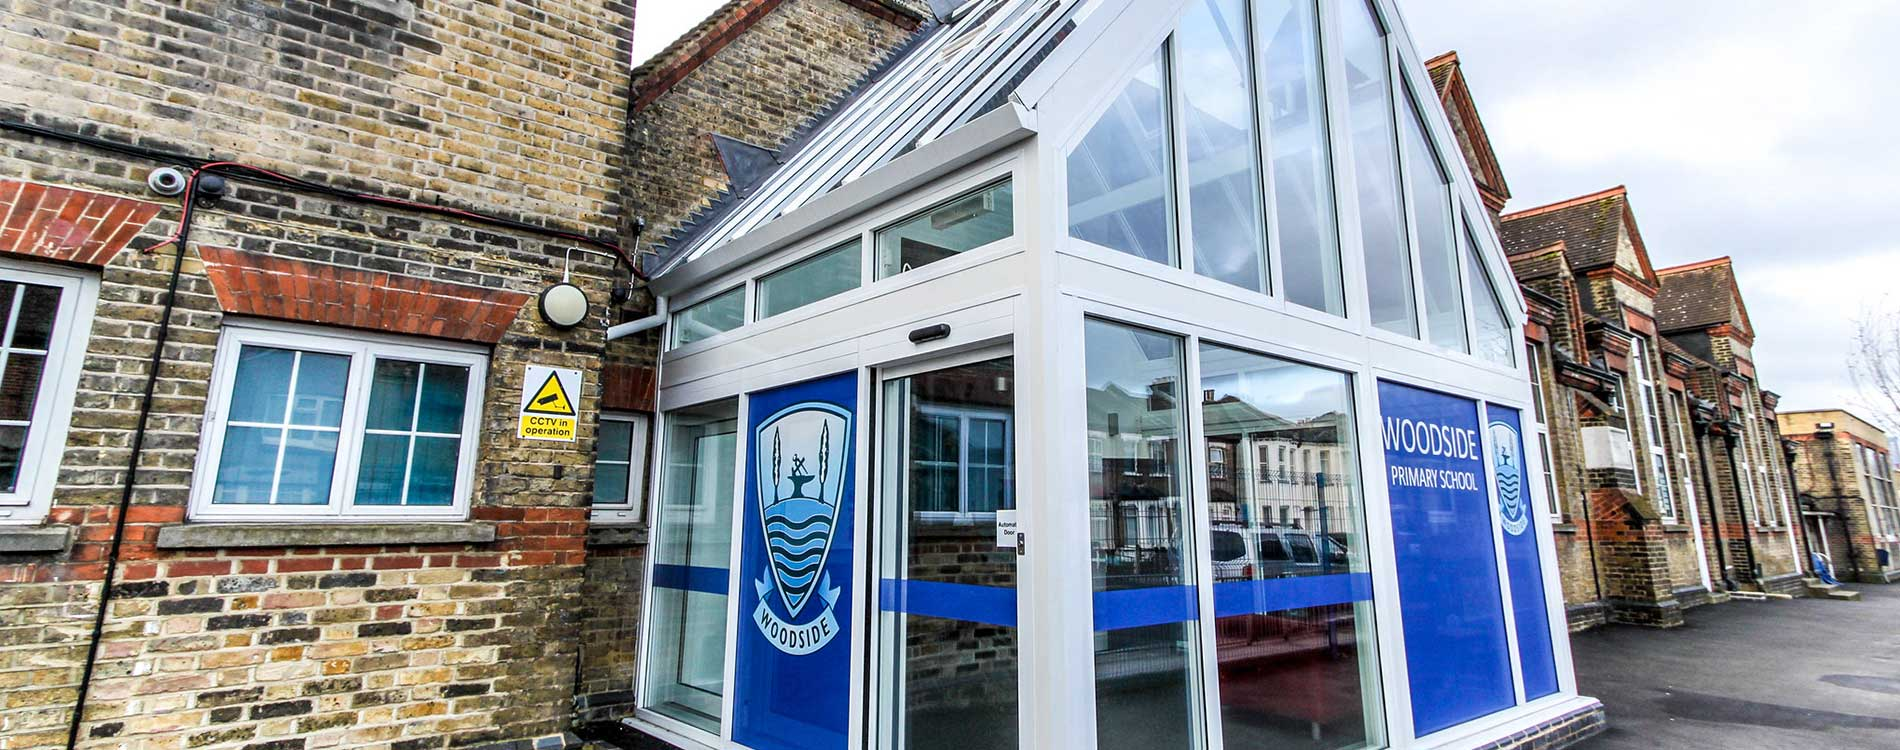 New constructed conservatory entrance to a school in London